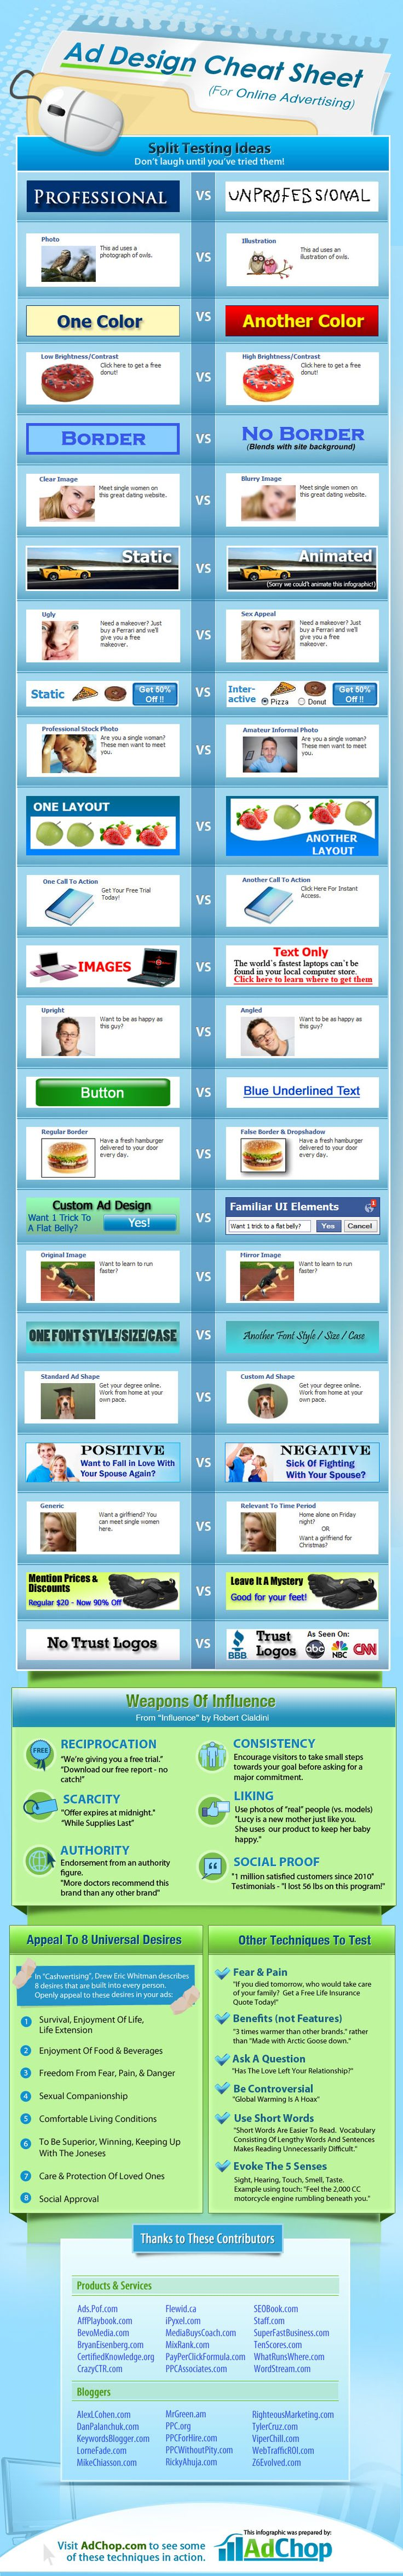 Here's a cheat sheet of split testing ideas and techniques. This #Infographic was a combined effort of many internet #marketing experts who provided concepts and feedback that Ad Chop incorporated. Next time you need an idea to split test, you can refer to this cheat sheet.